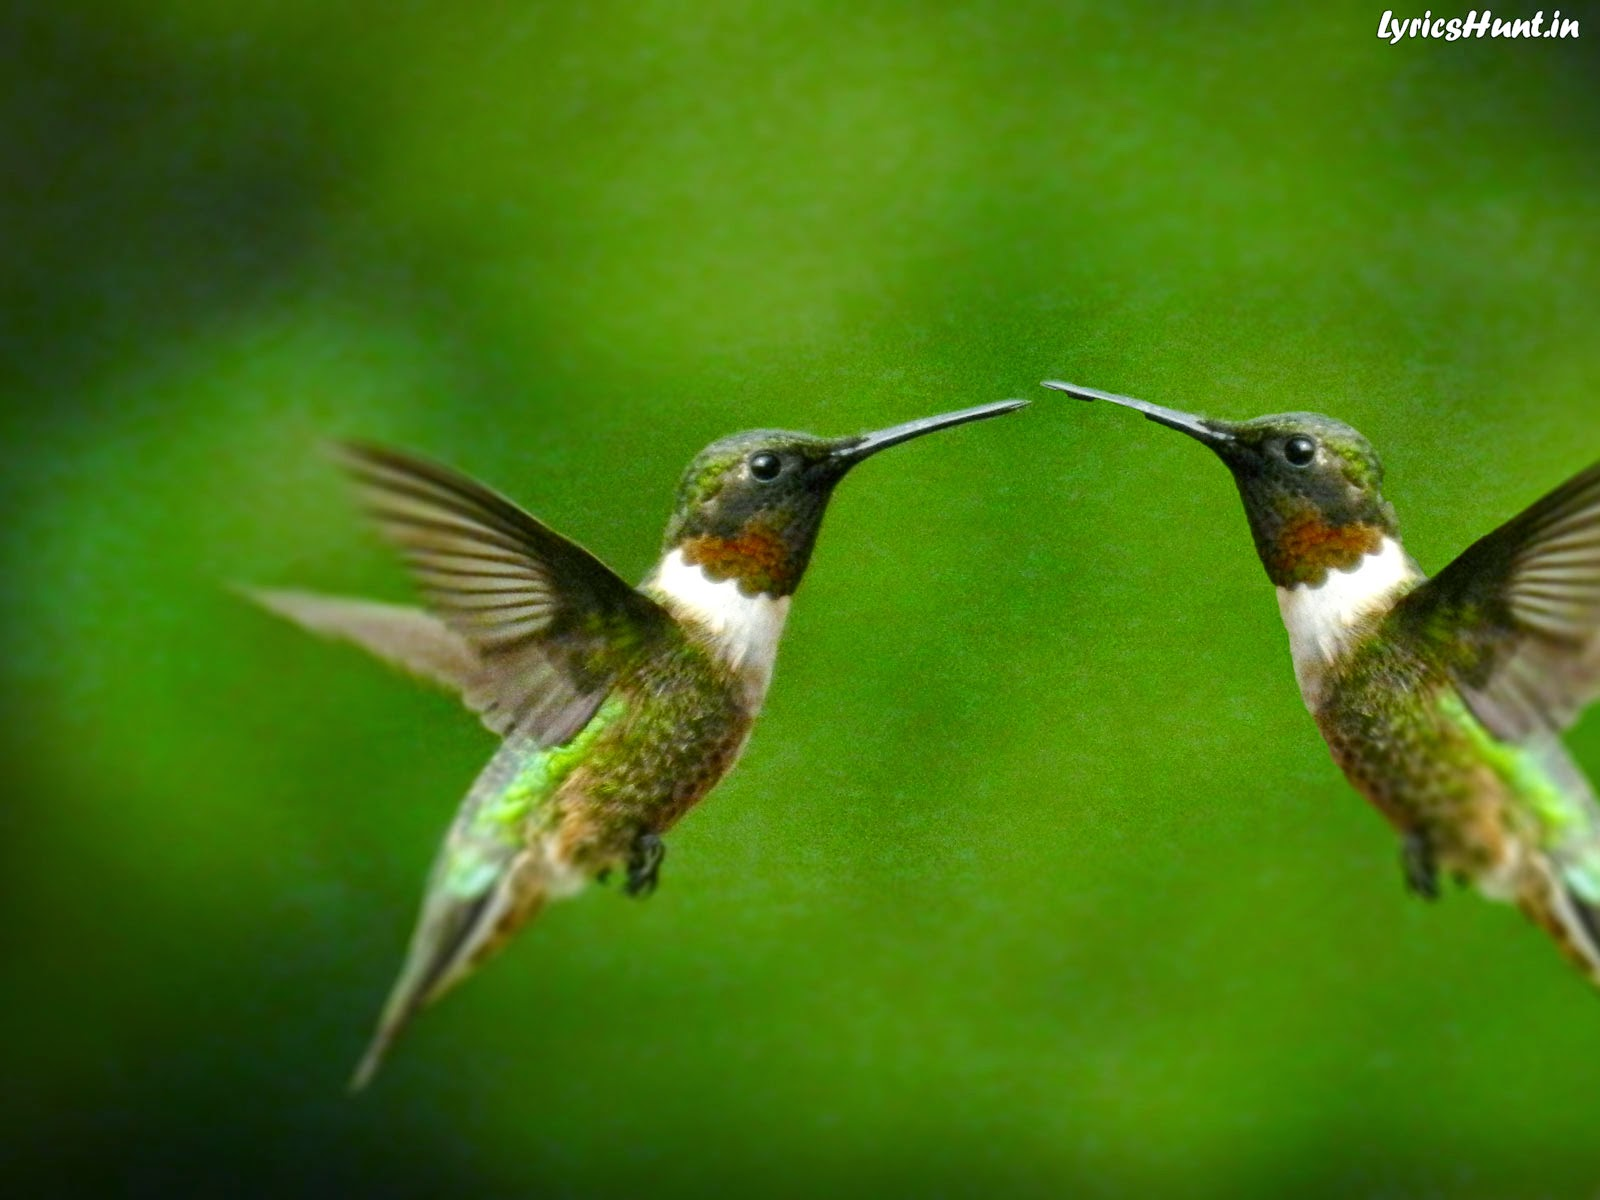 HIGH DEFINITION BIRDS WALLPAPER | FLYING BIRDS IMAGES